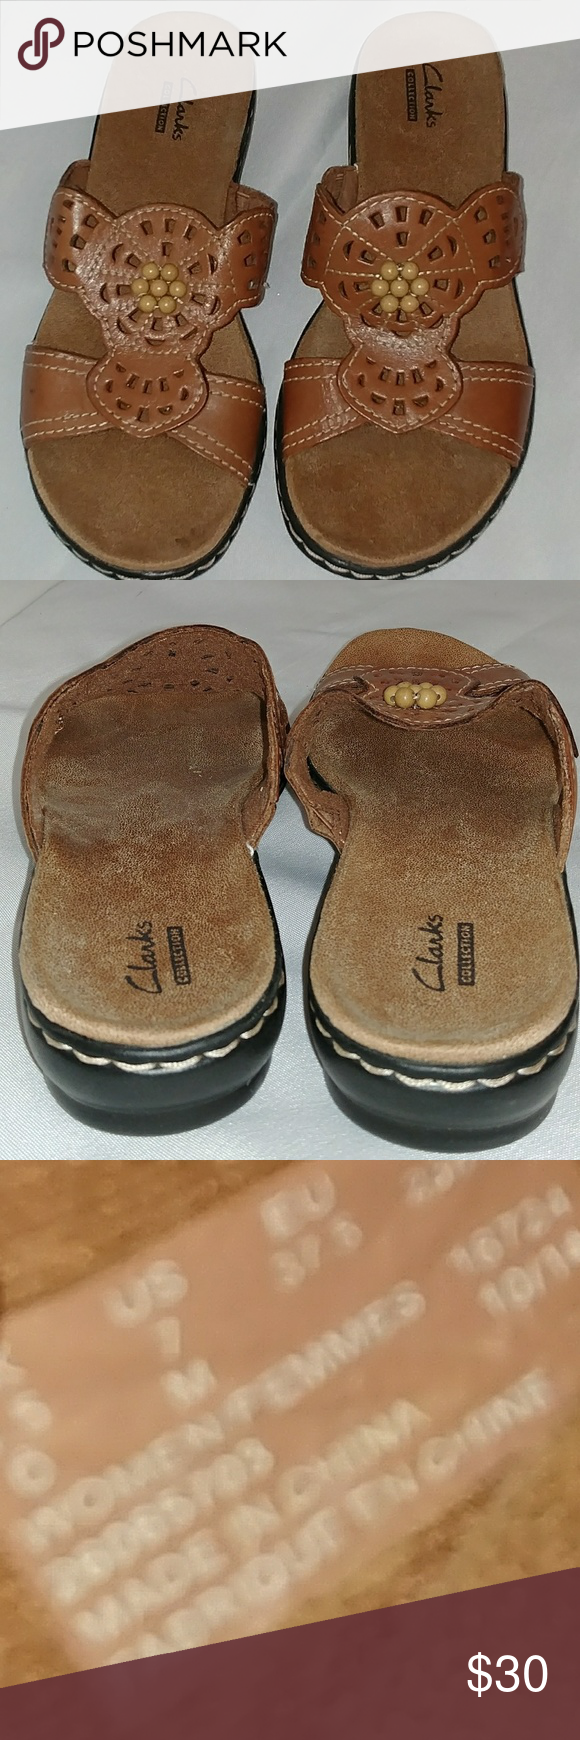 Clark S Collection Sandals Women S Clark Collection Sandals Size 7 Good Condition Clarks Shoes Sandals Womens Sandals Clarks Shoes Sandals